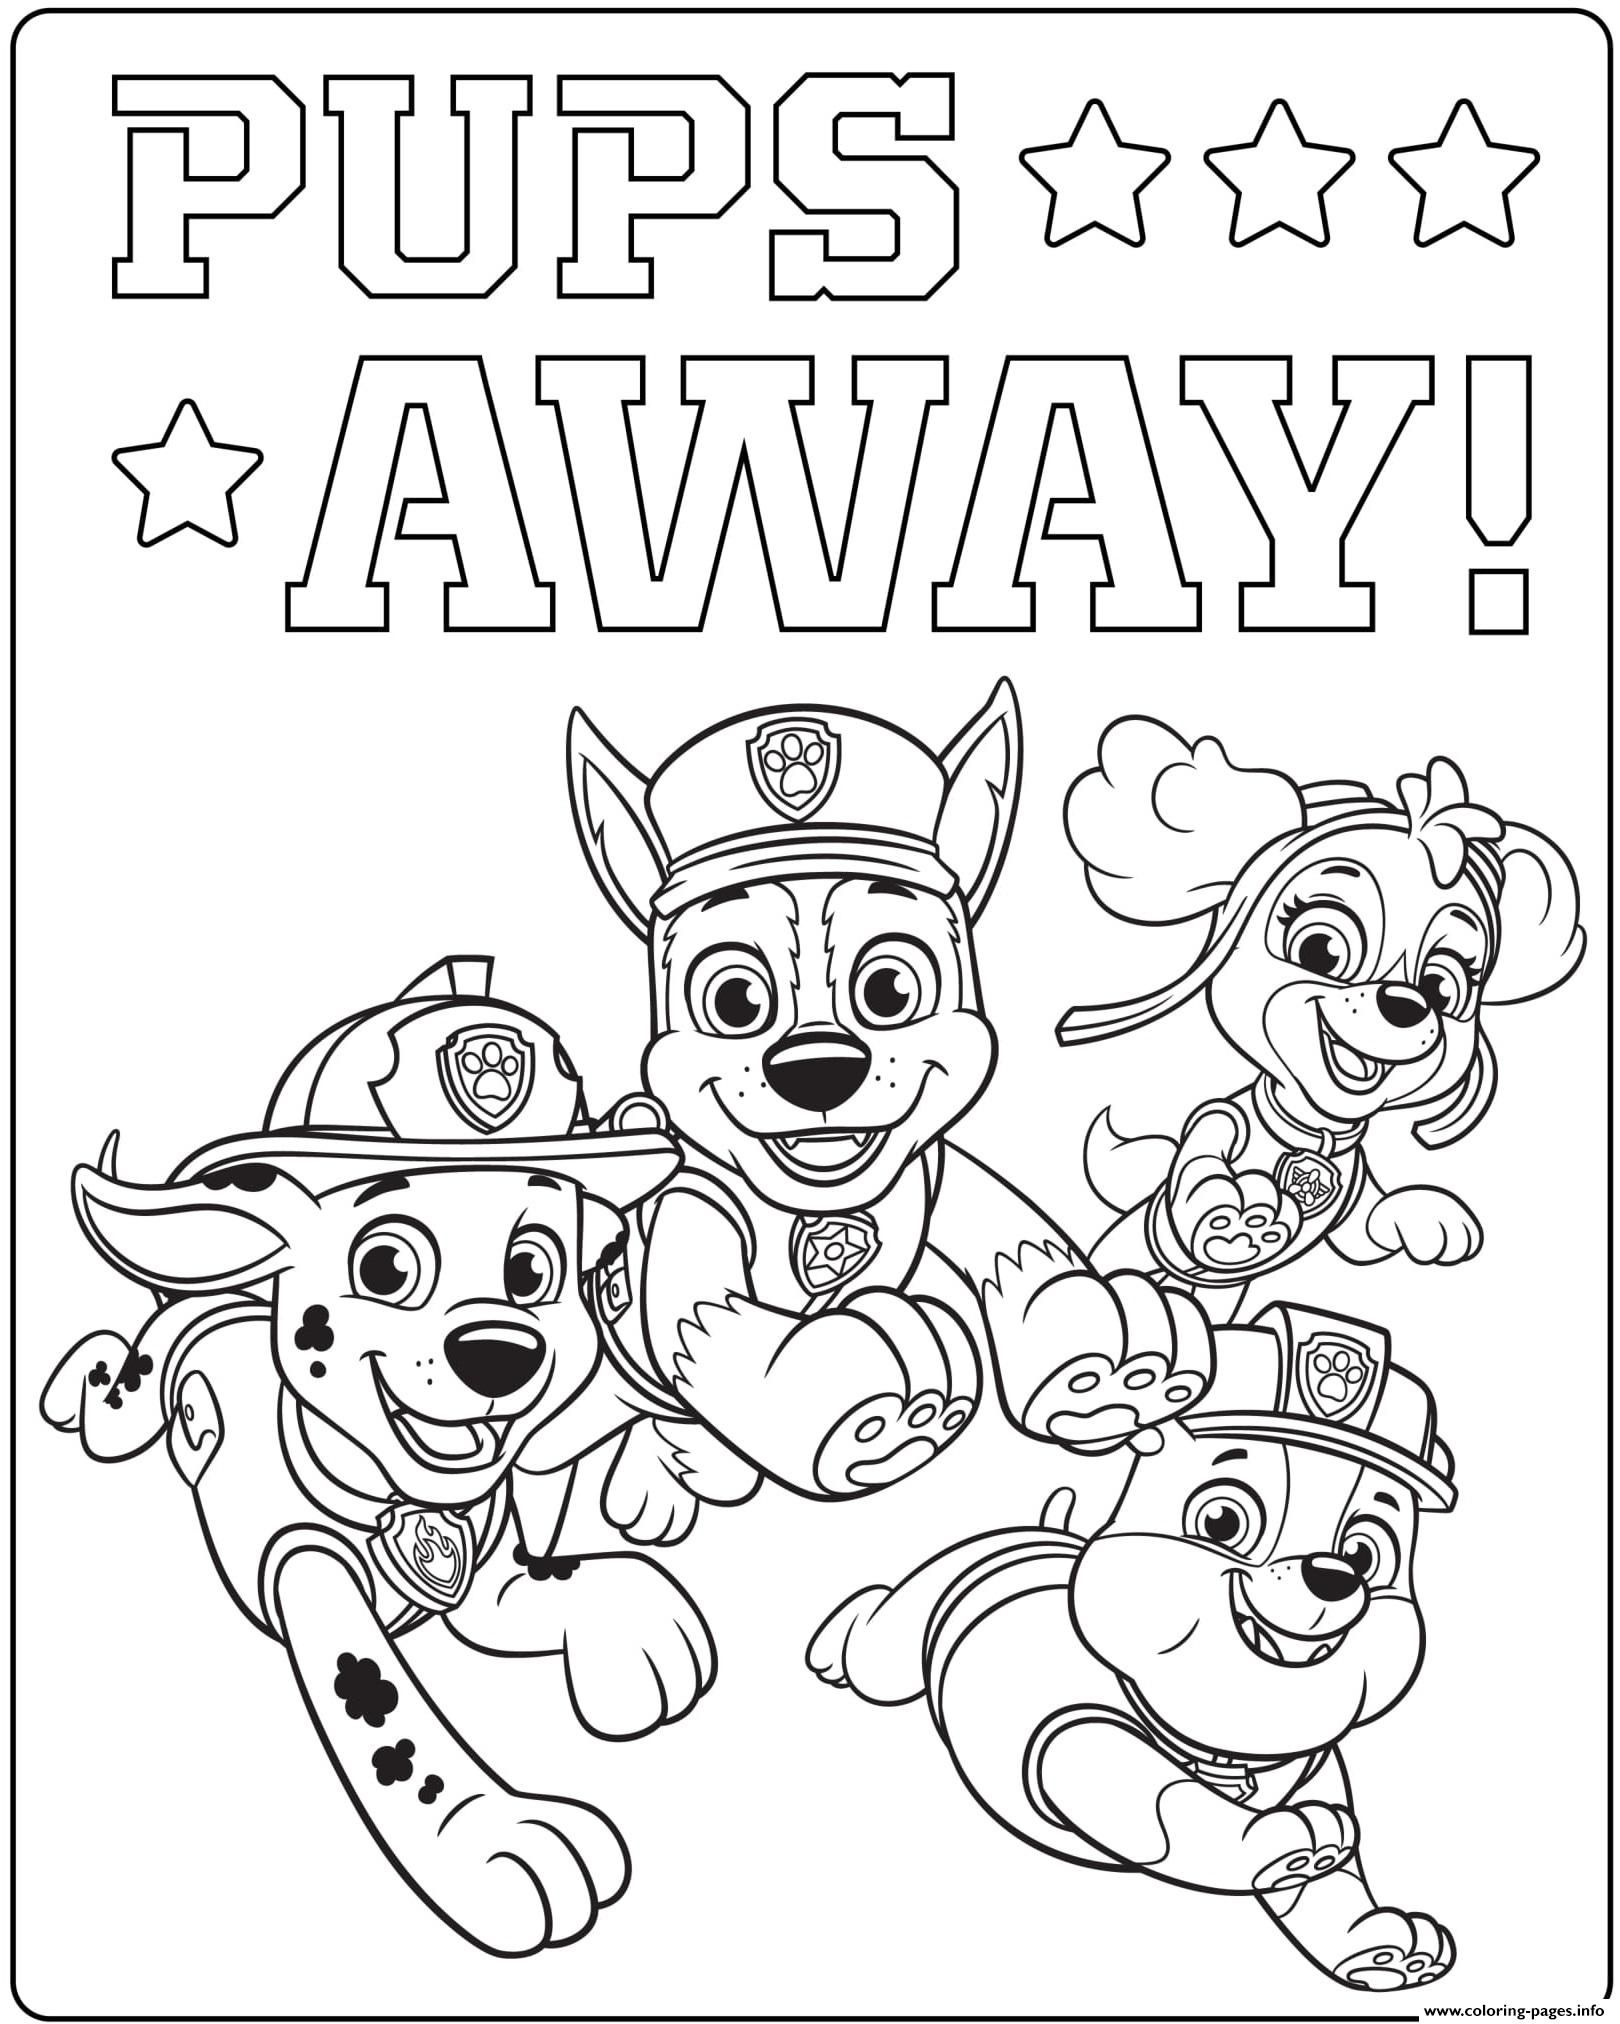 Coloring Pages For Kindergarten Boys Colouring Mermaid In 2020 Paw Patrol Coloring Paw Patrol Coloring Pages Birthday Coloring Pages